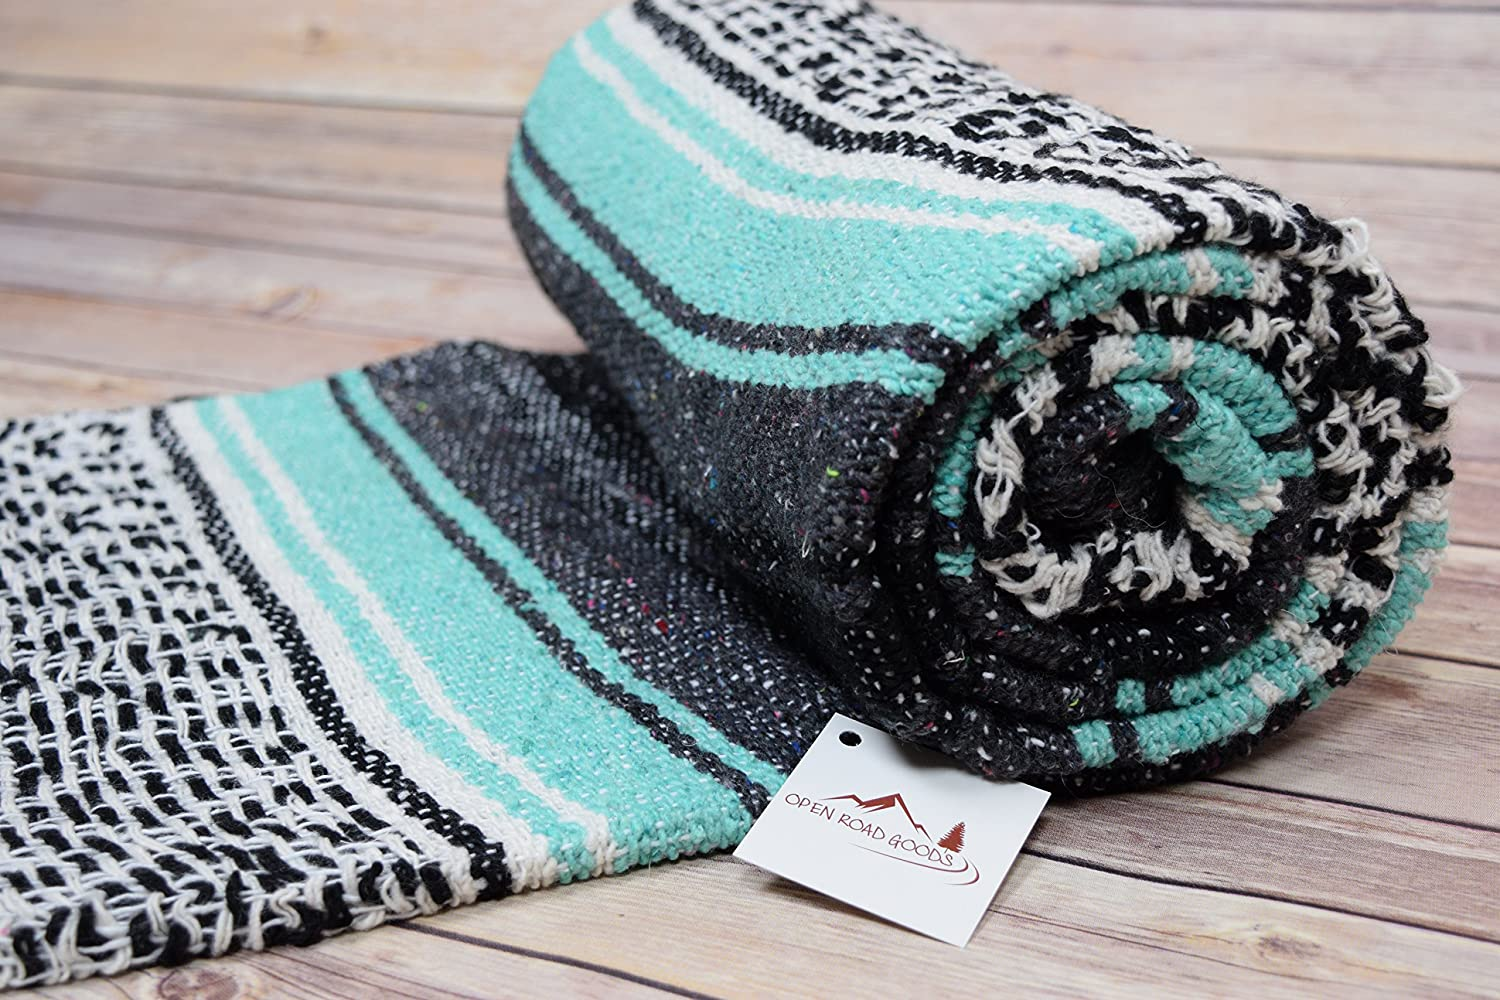 Mint / Teal and Grey Mexican Falsa Blanket